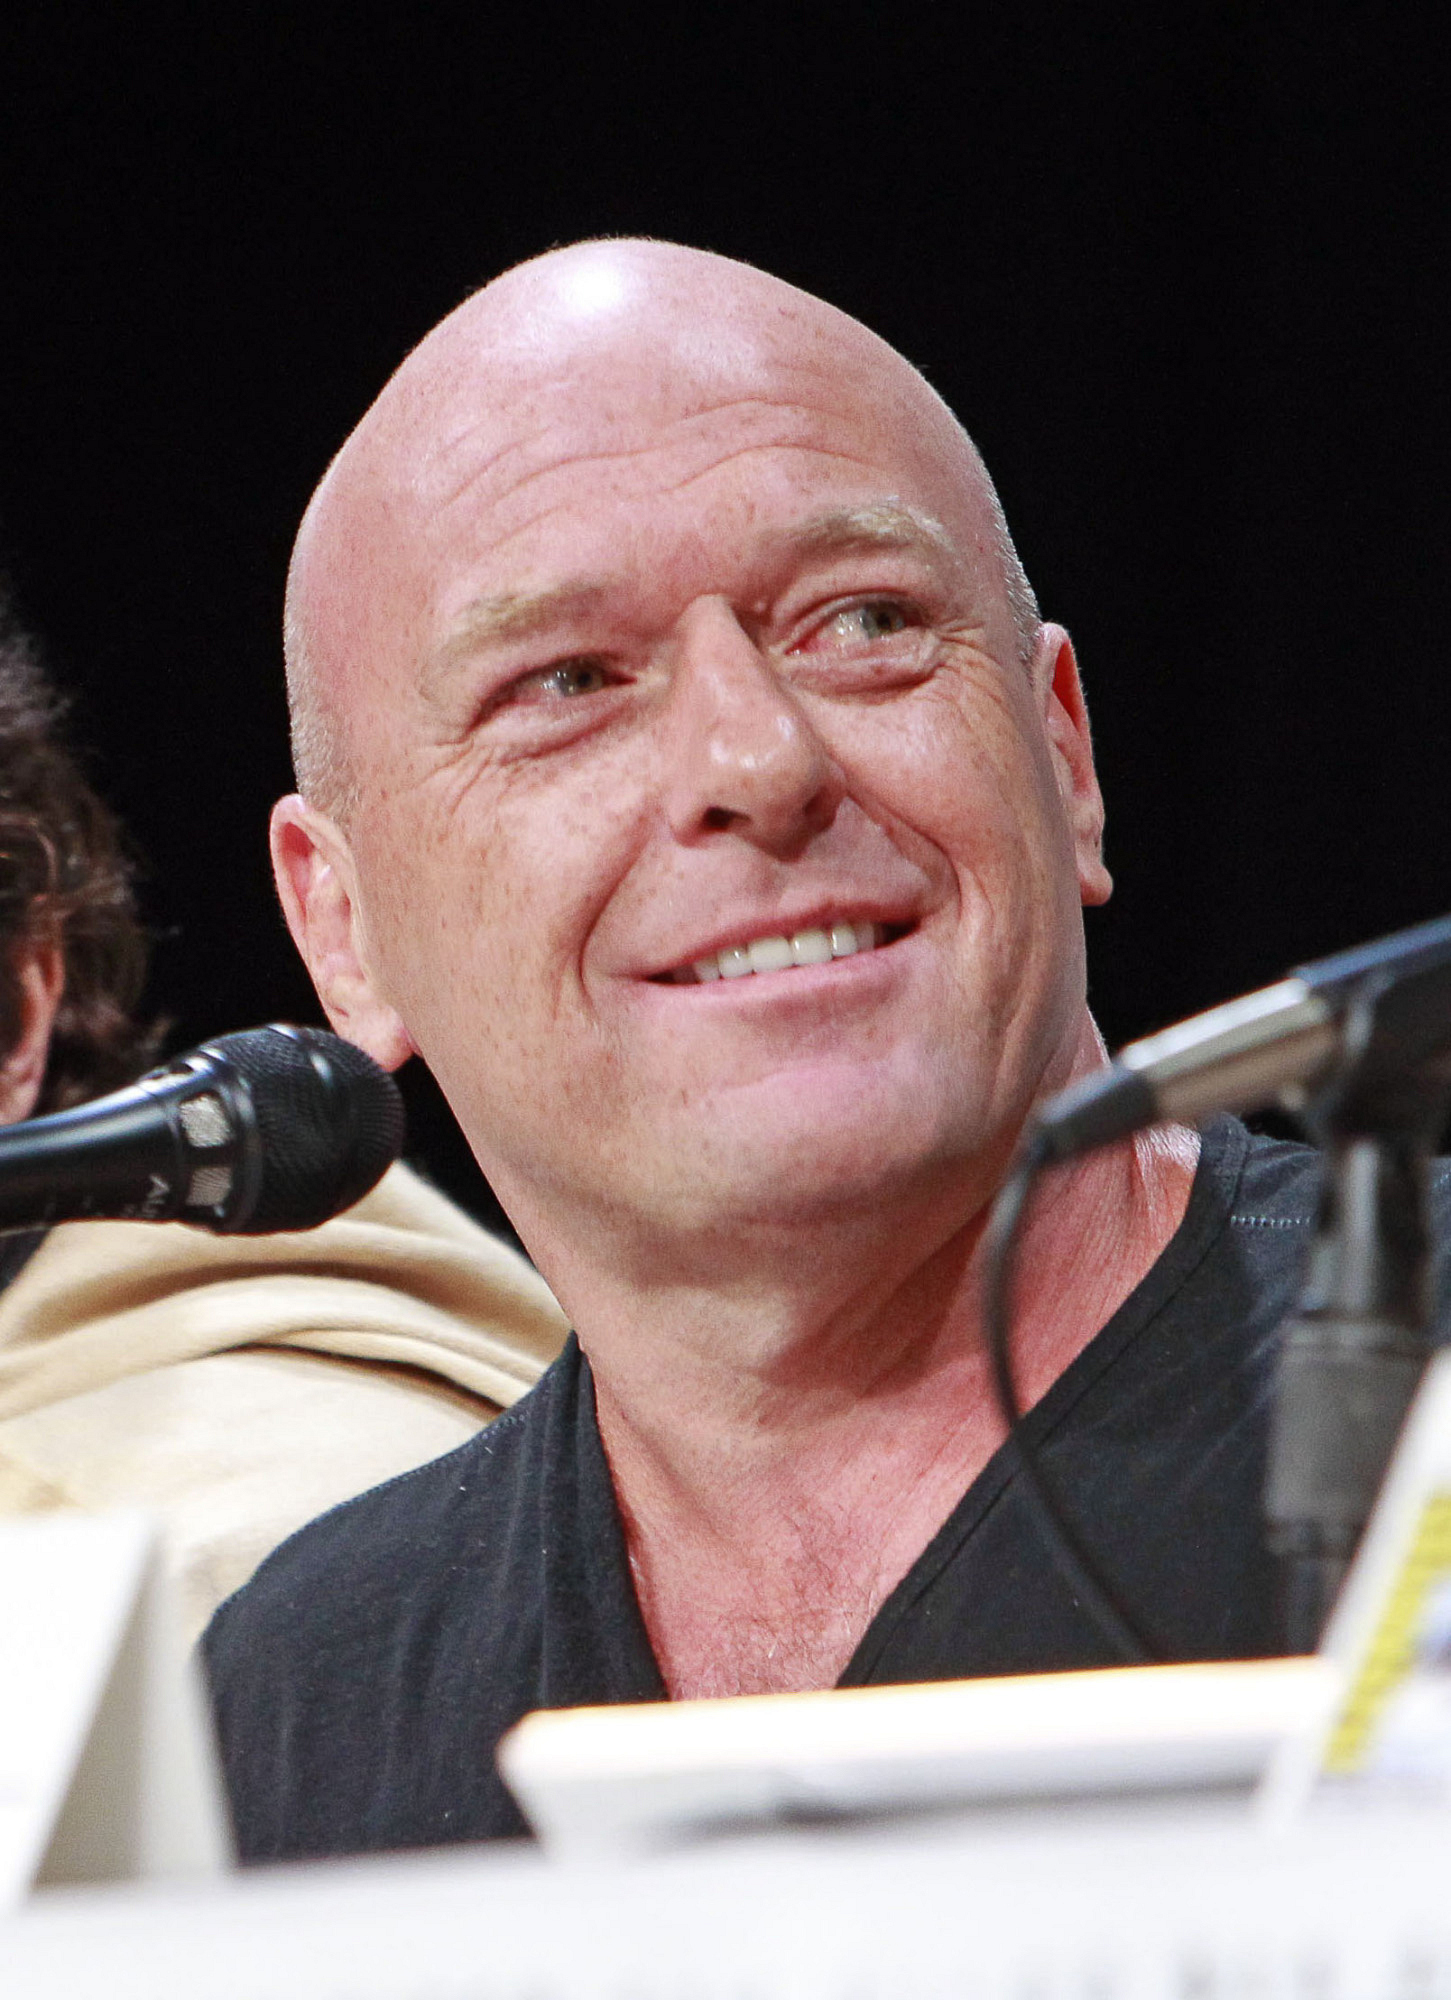 5. Dean Norris graduated from Harvard University.